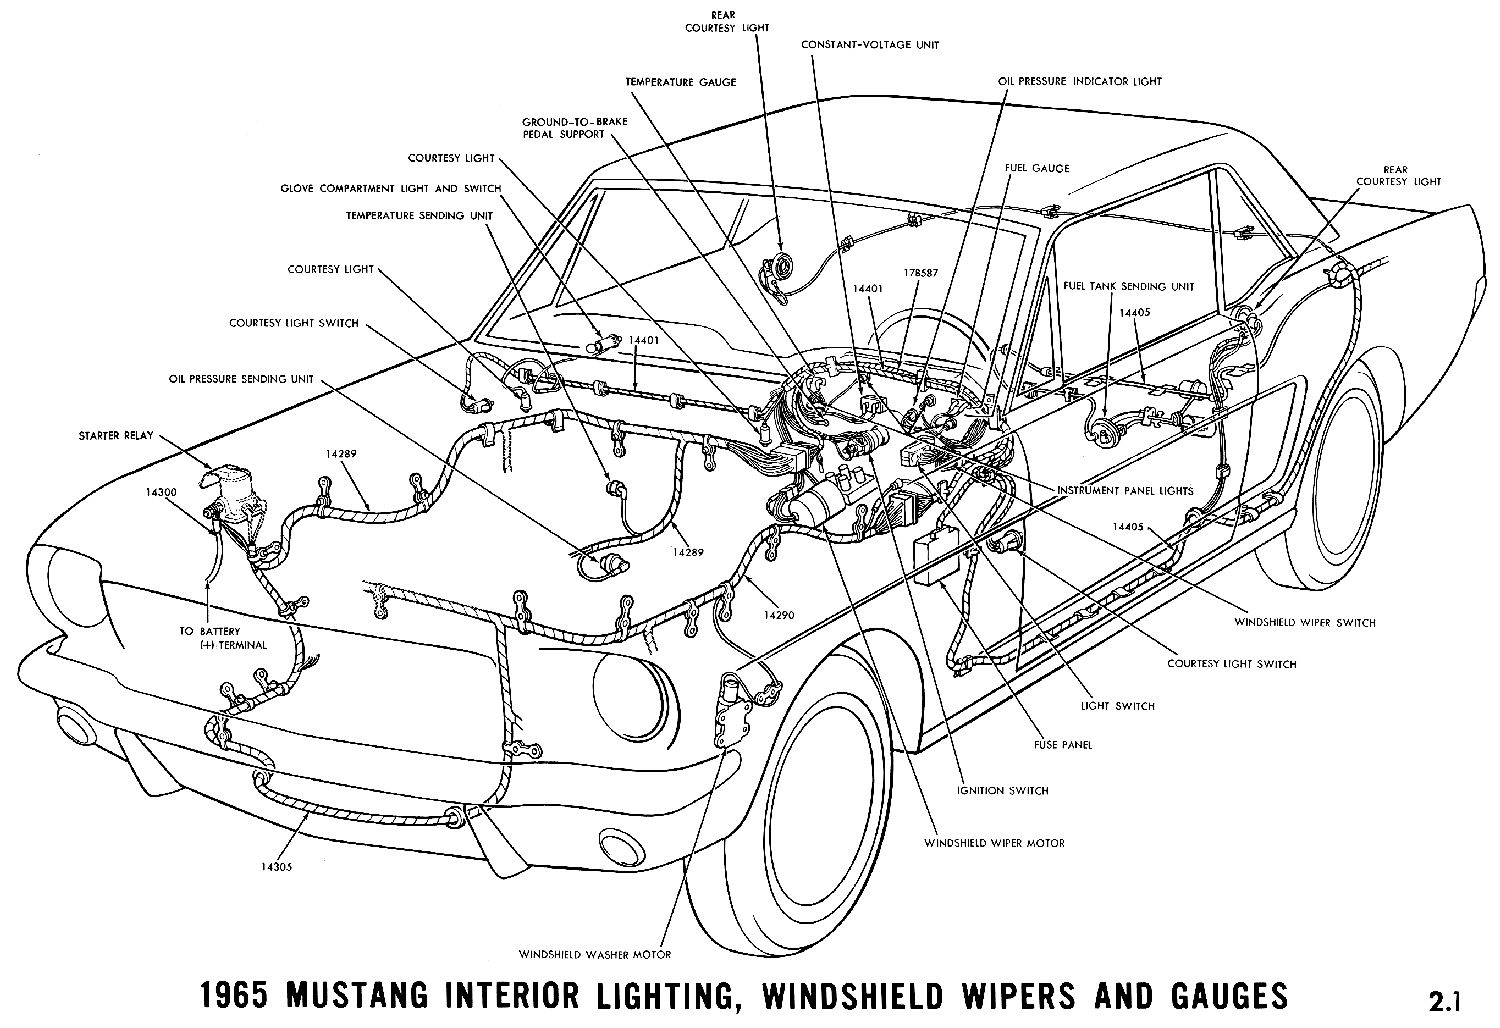 Vw Thing Wiper Motor Wiring Diagram